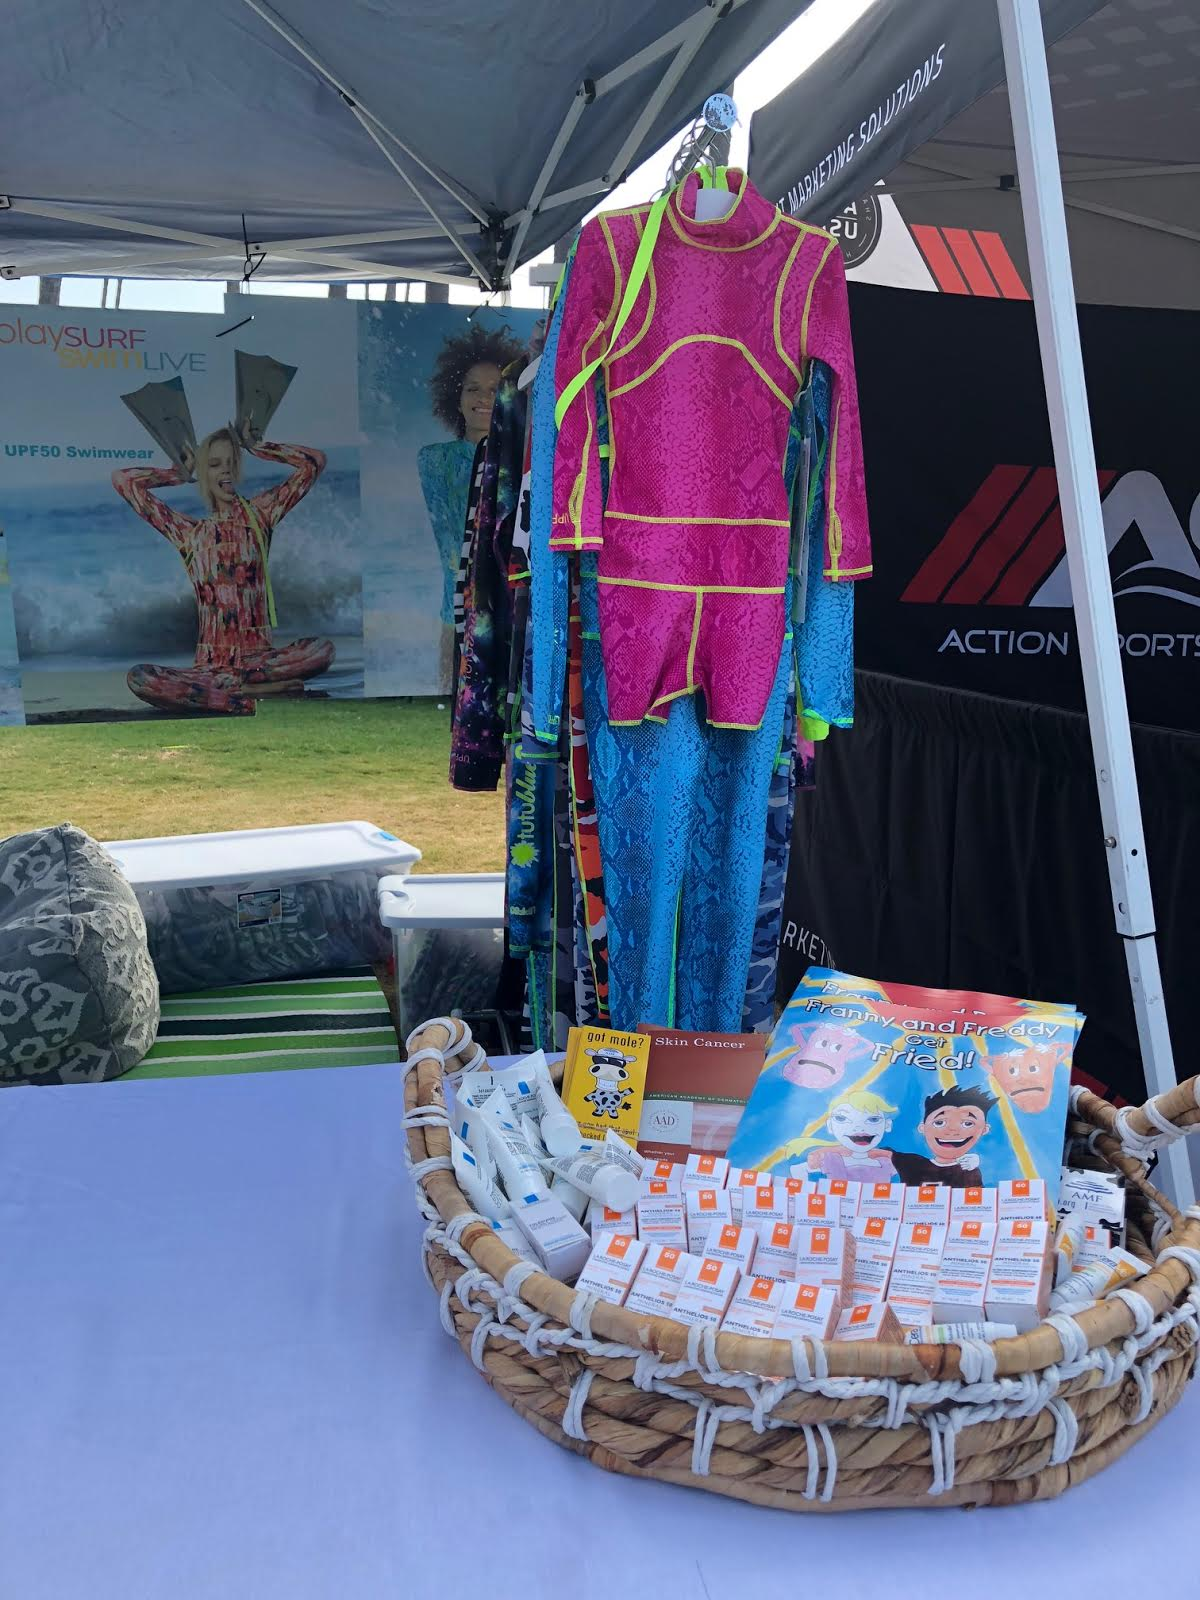 Tutublue provided participants of the event with sun safety and melanoma awareness materials provided by The American Melanoma Foundation as well as sunscreen generously provided by La Roche-Posay.